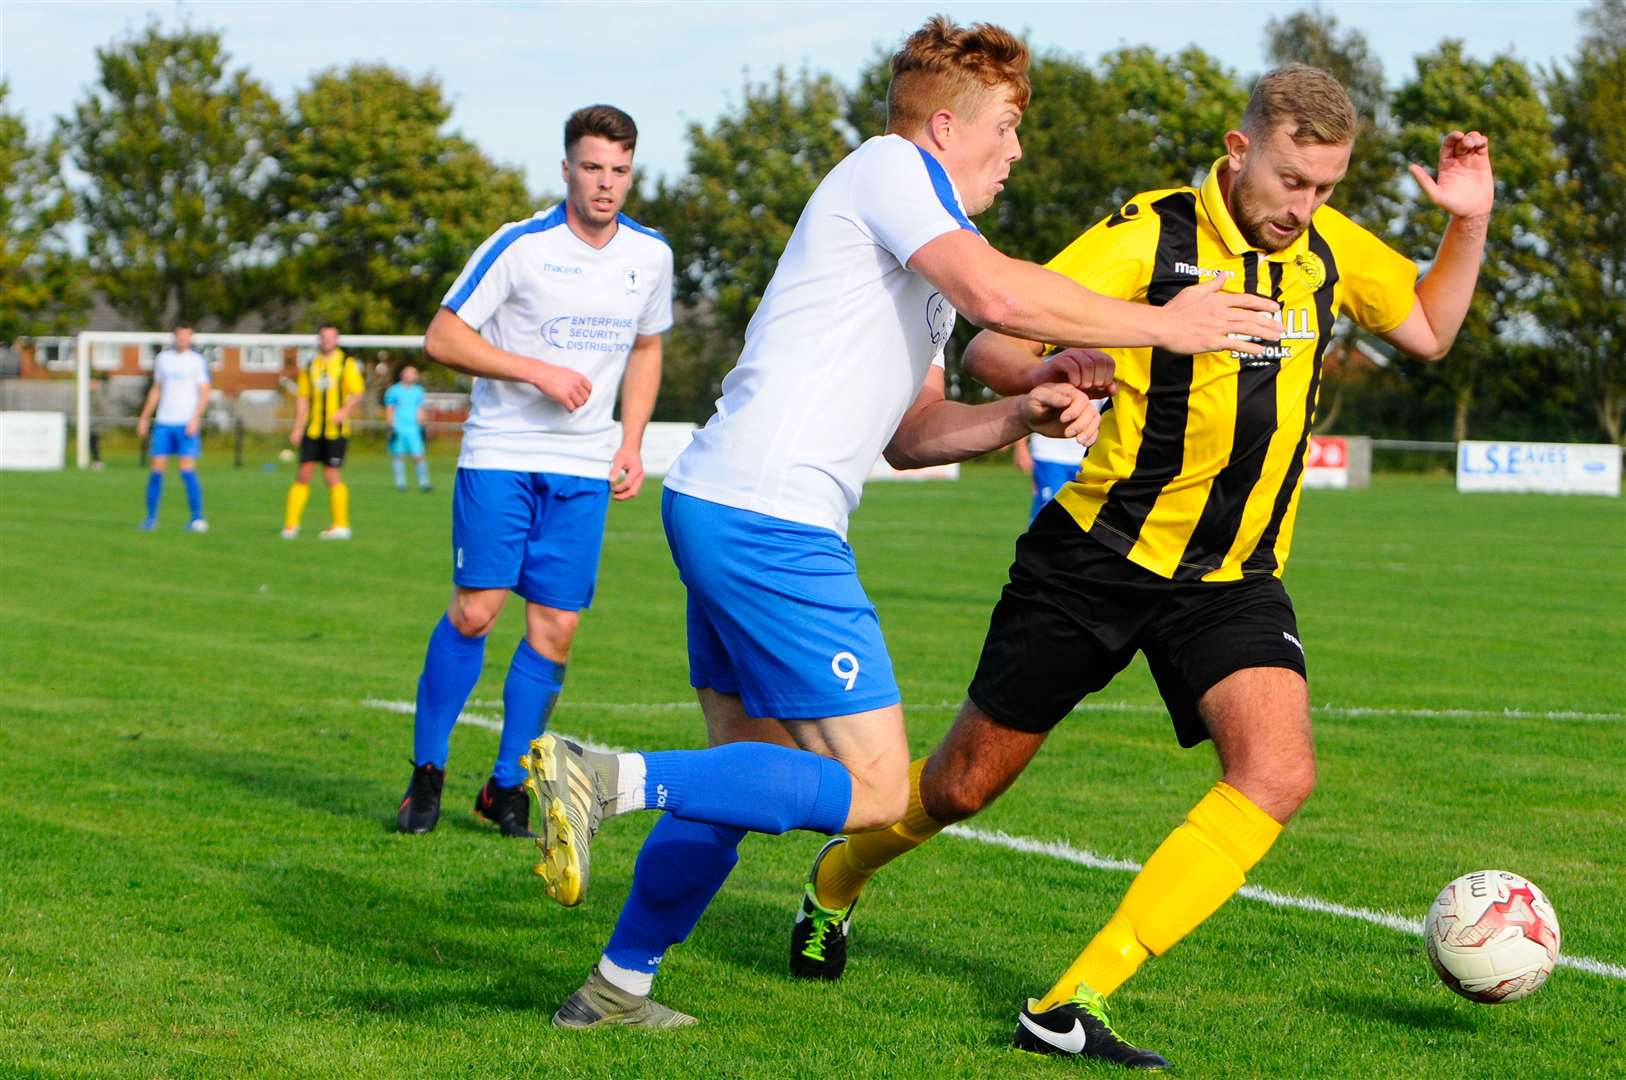 Debenham, Suffolk, 05/09/2020..Football action from Debenham LC vs Fakenham Town FC - Matt Aldis..Picture: Mark Bullimore Photography. (41983239)